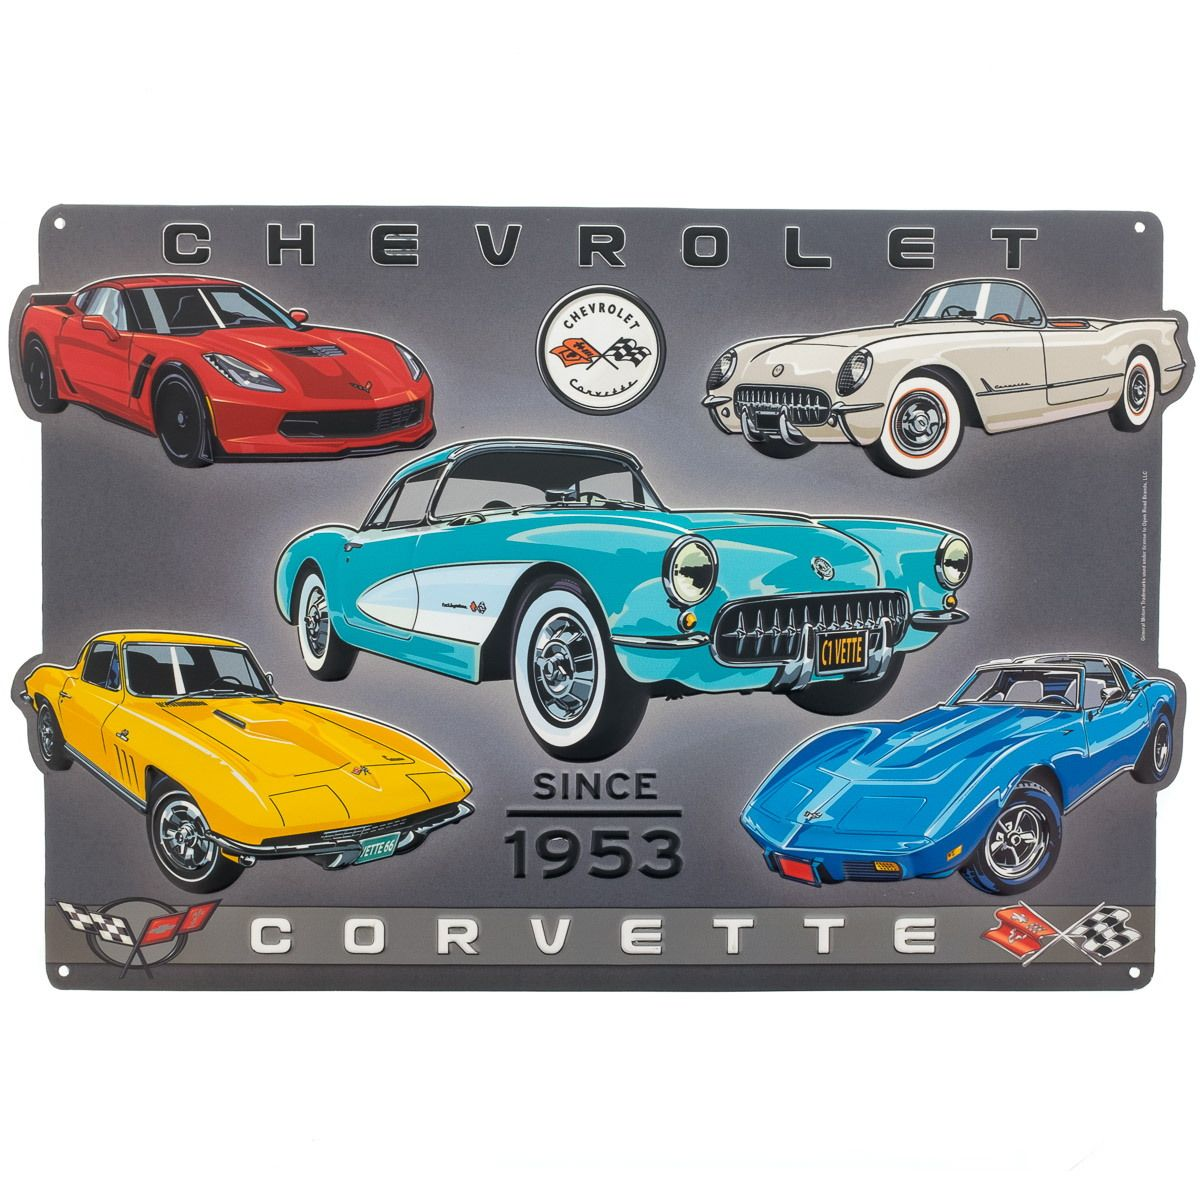 Chevrolet Corvette Since 1953 Collage Embossed Tin Sign_D